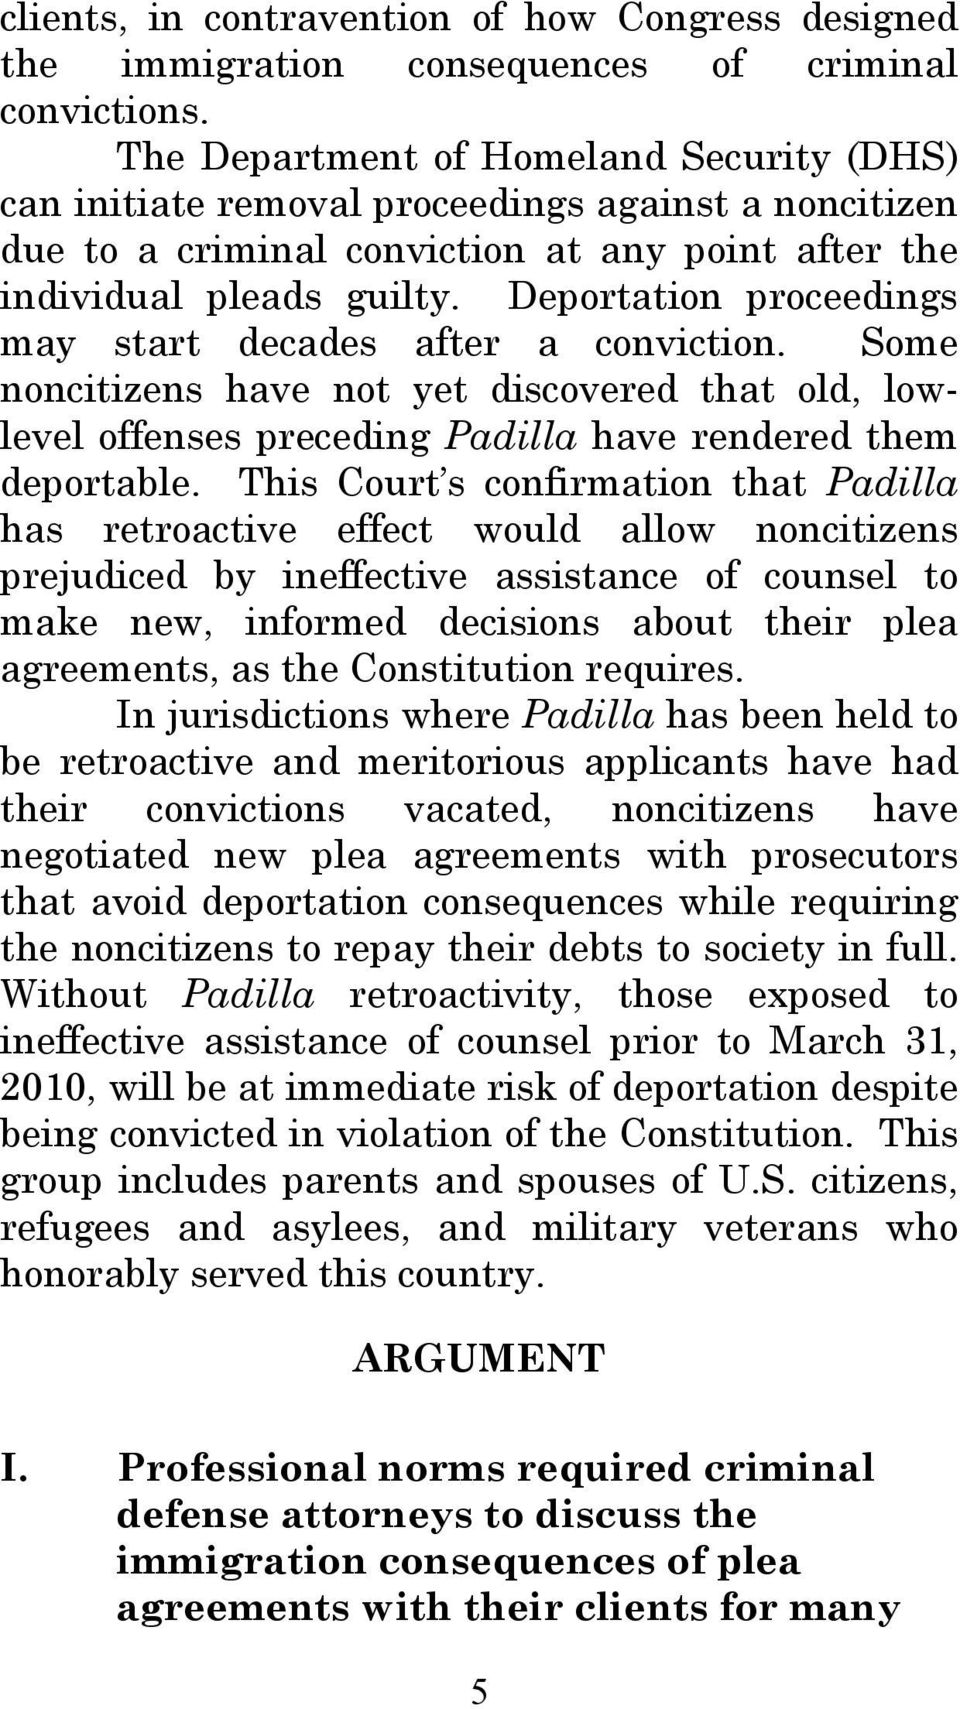 Deportation proceedings may start decades after a conviction. Some noncitizens have not yet discovered that old, lowlevel offenses preceding Padilla have rendered them deportable.